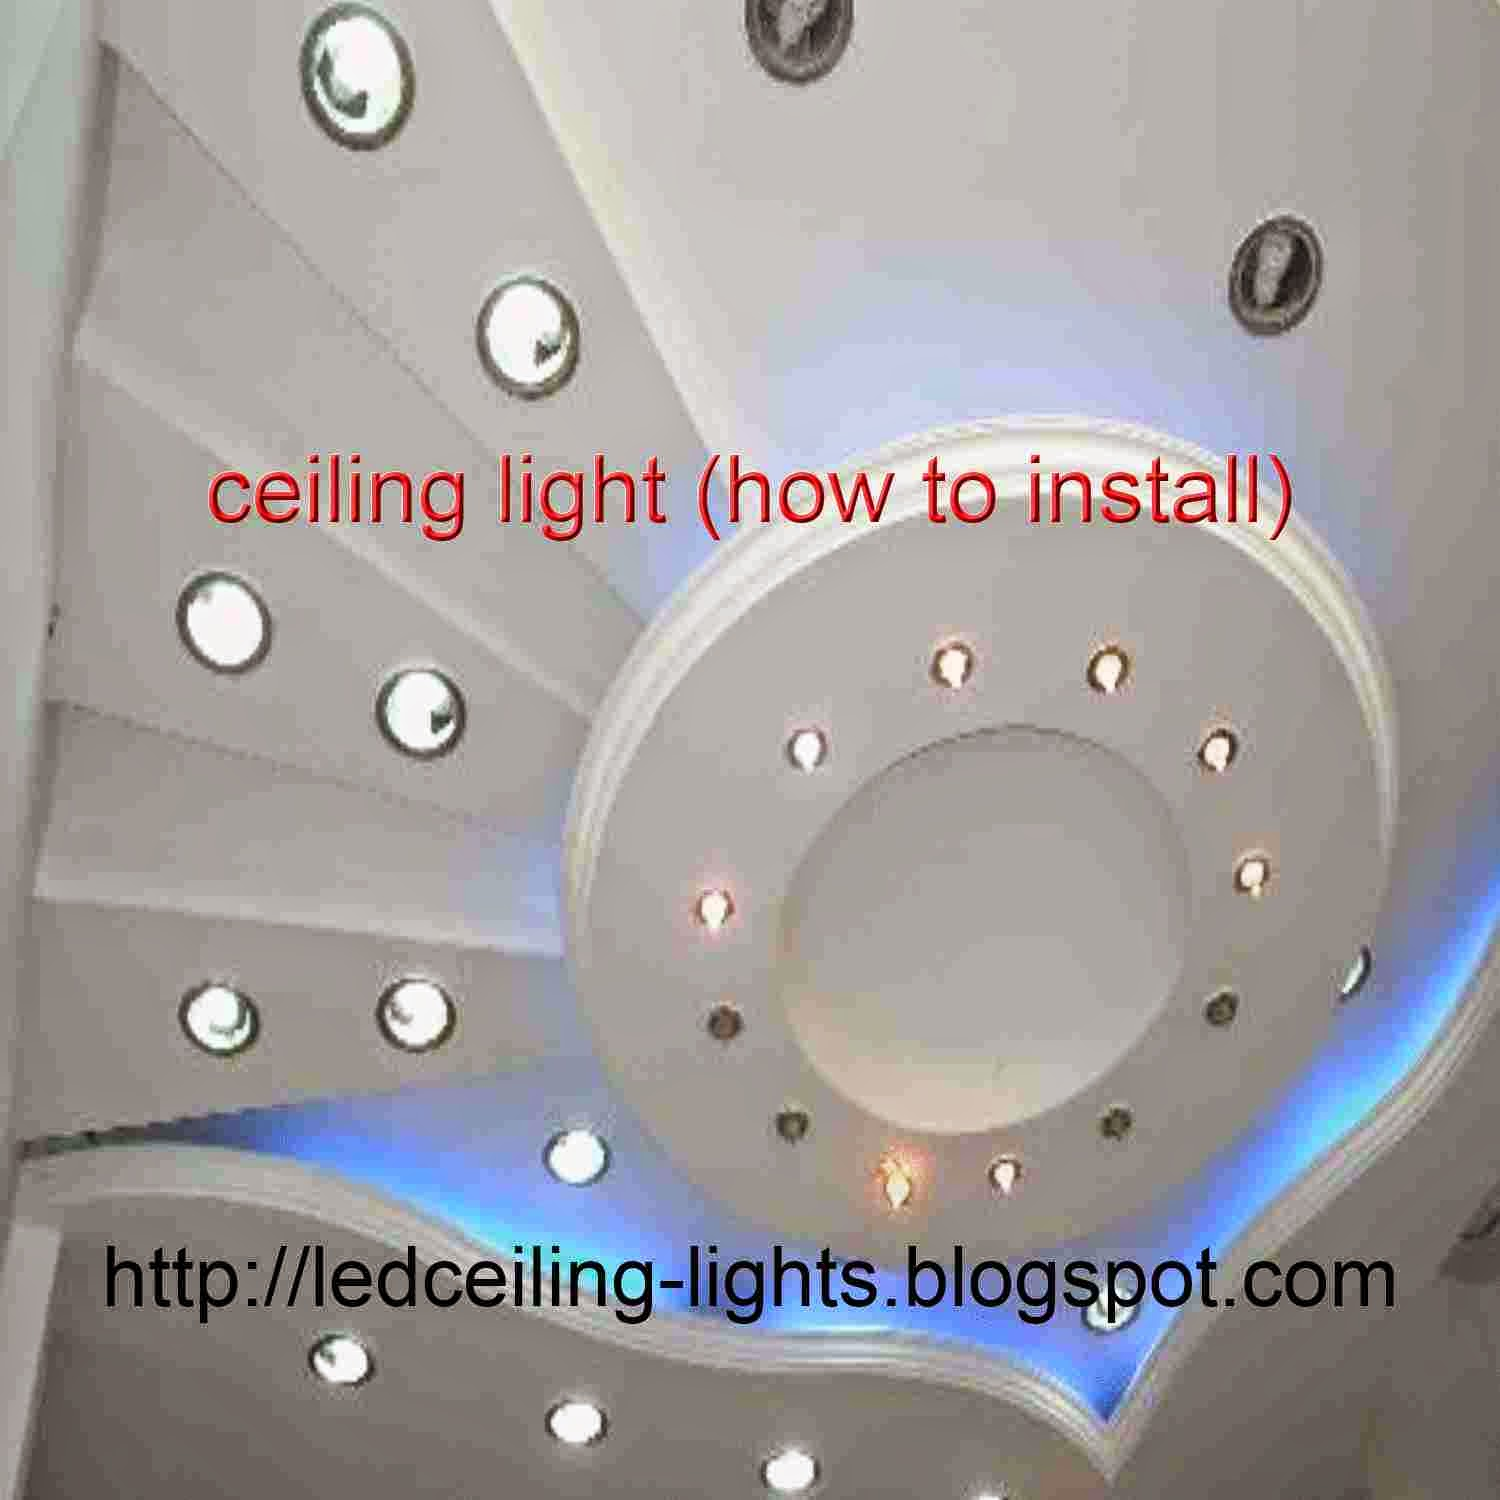 ceiling light (how to install) - Led Ceiling Lights